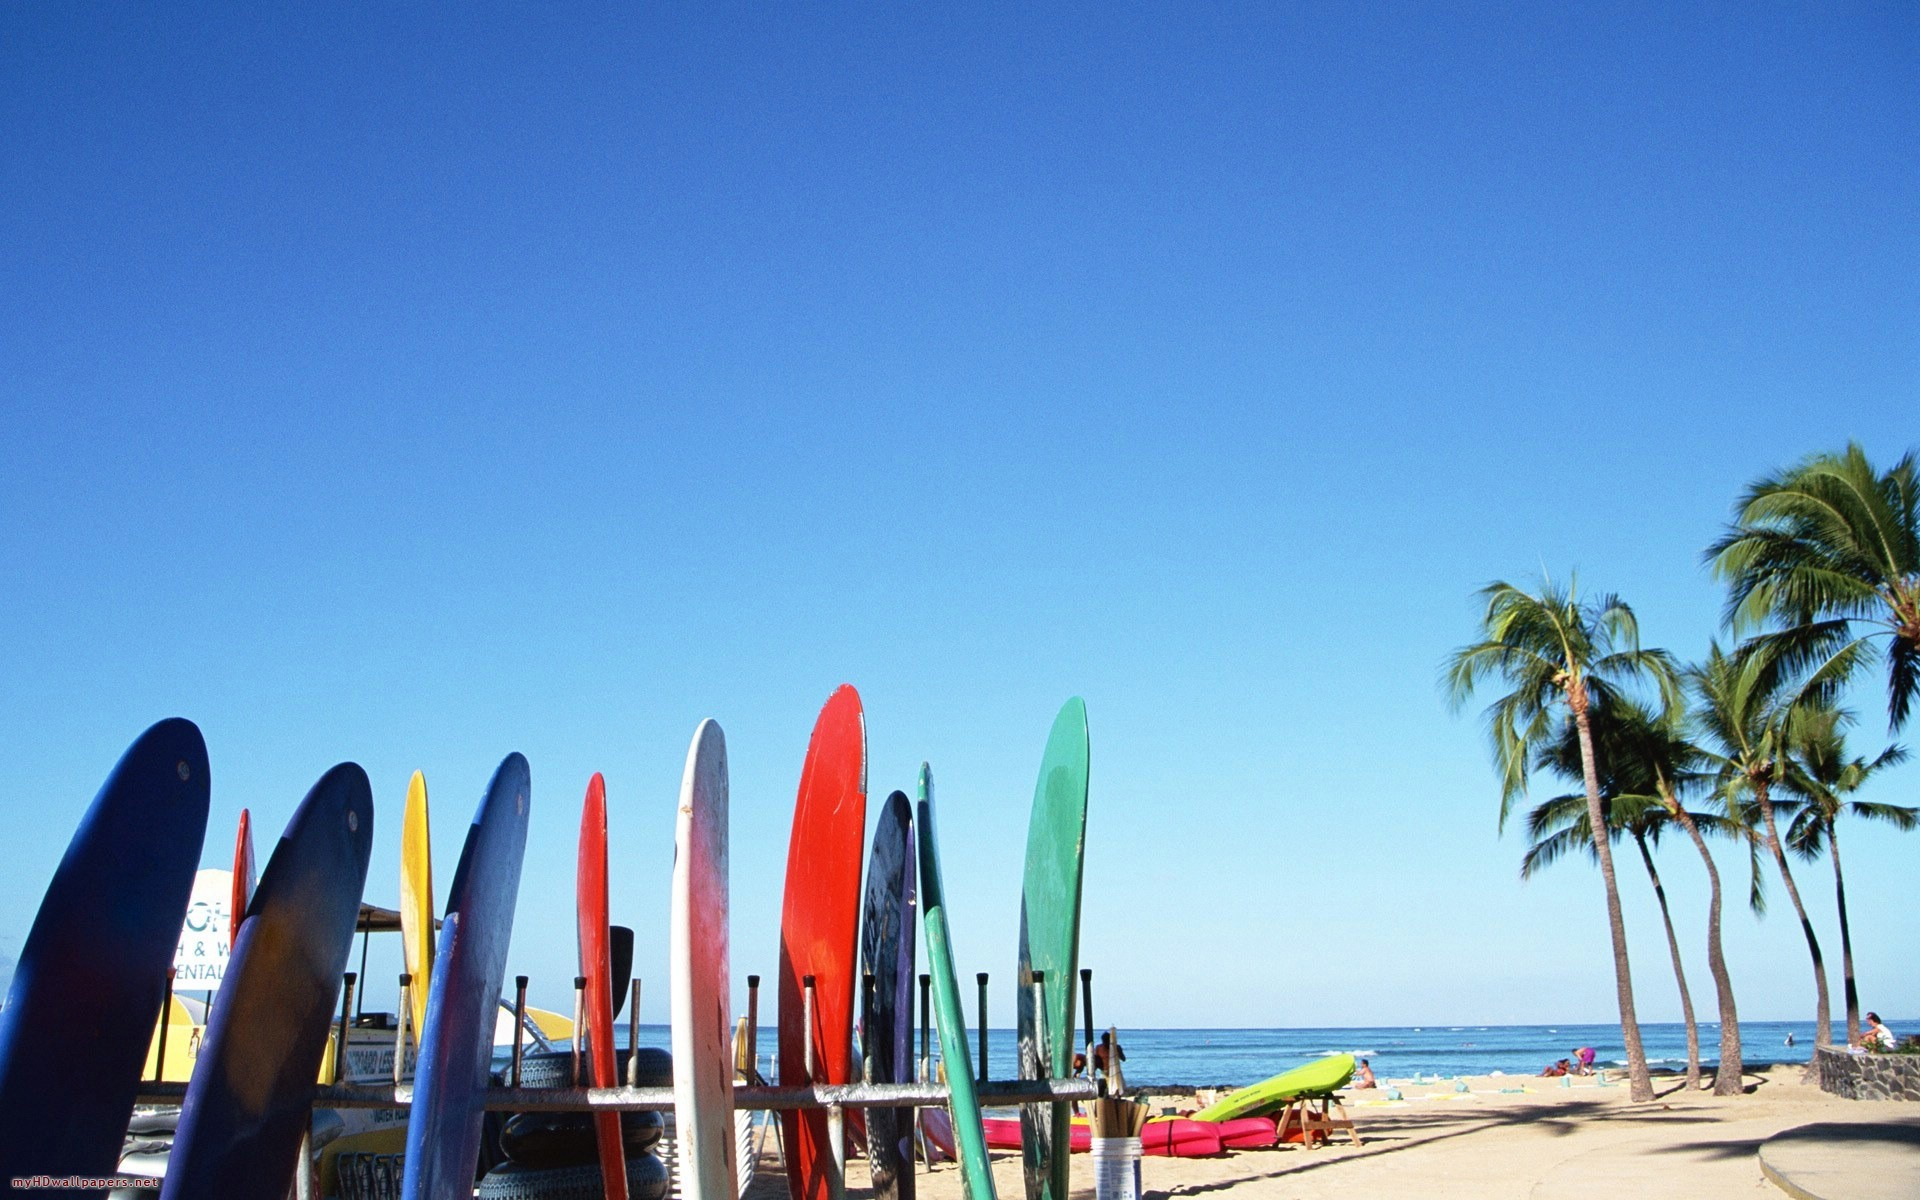 surf-boards_wallpapers_36430_1920x1200.j